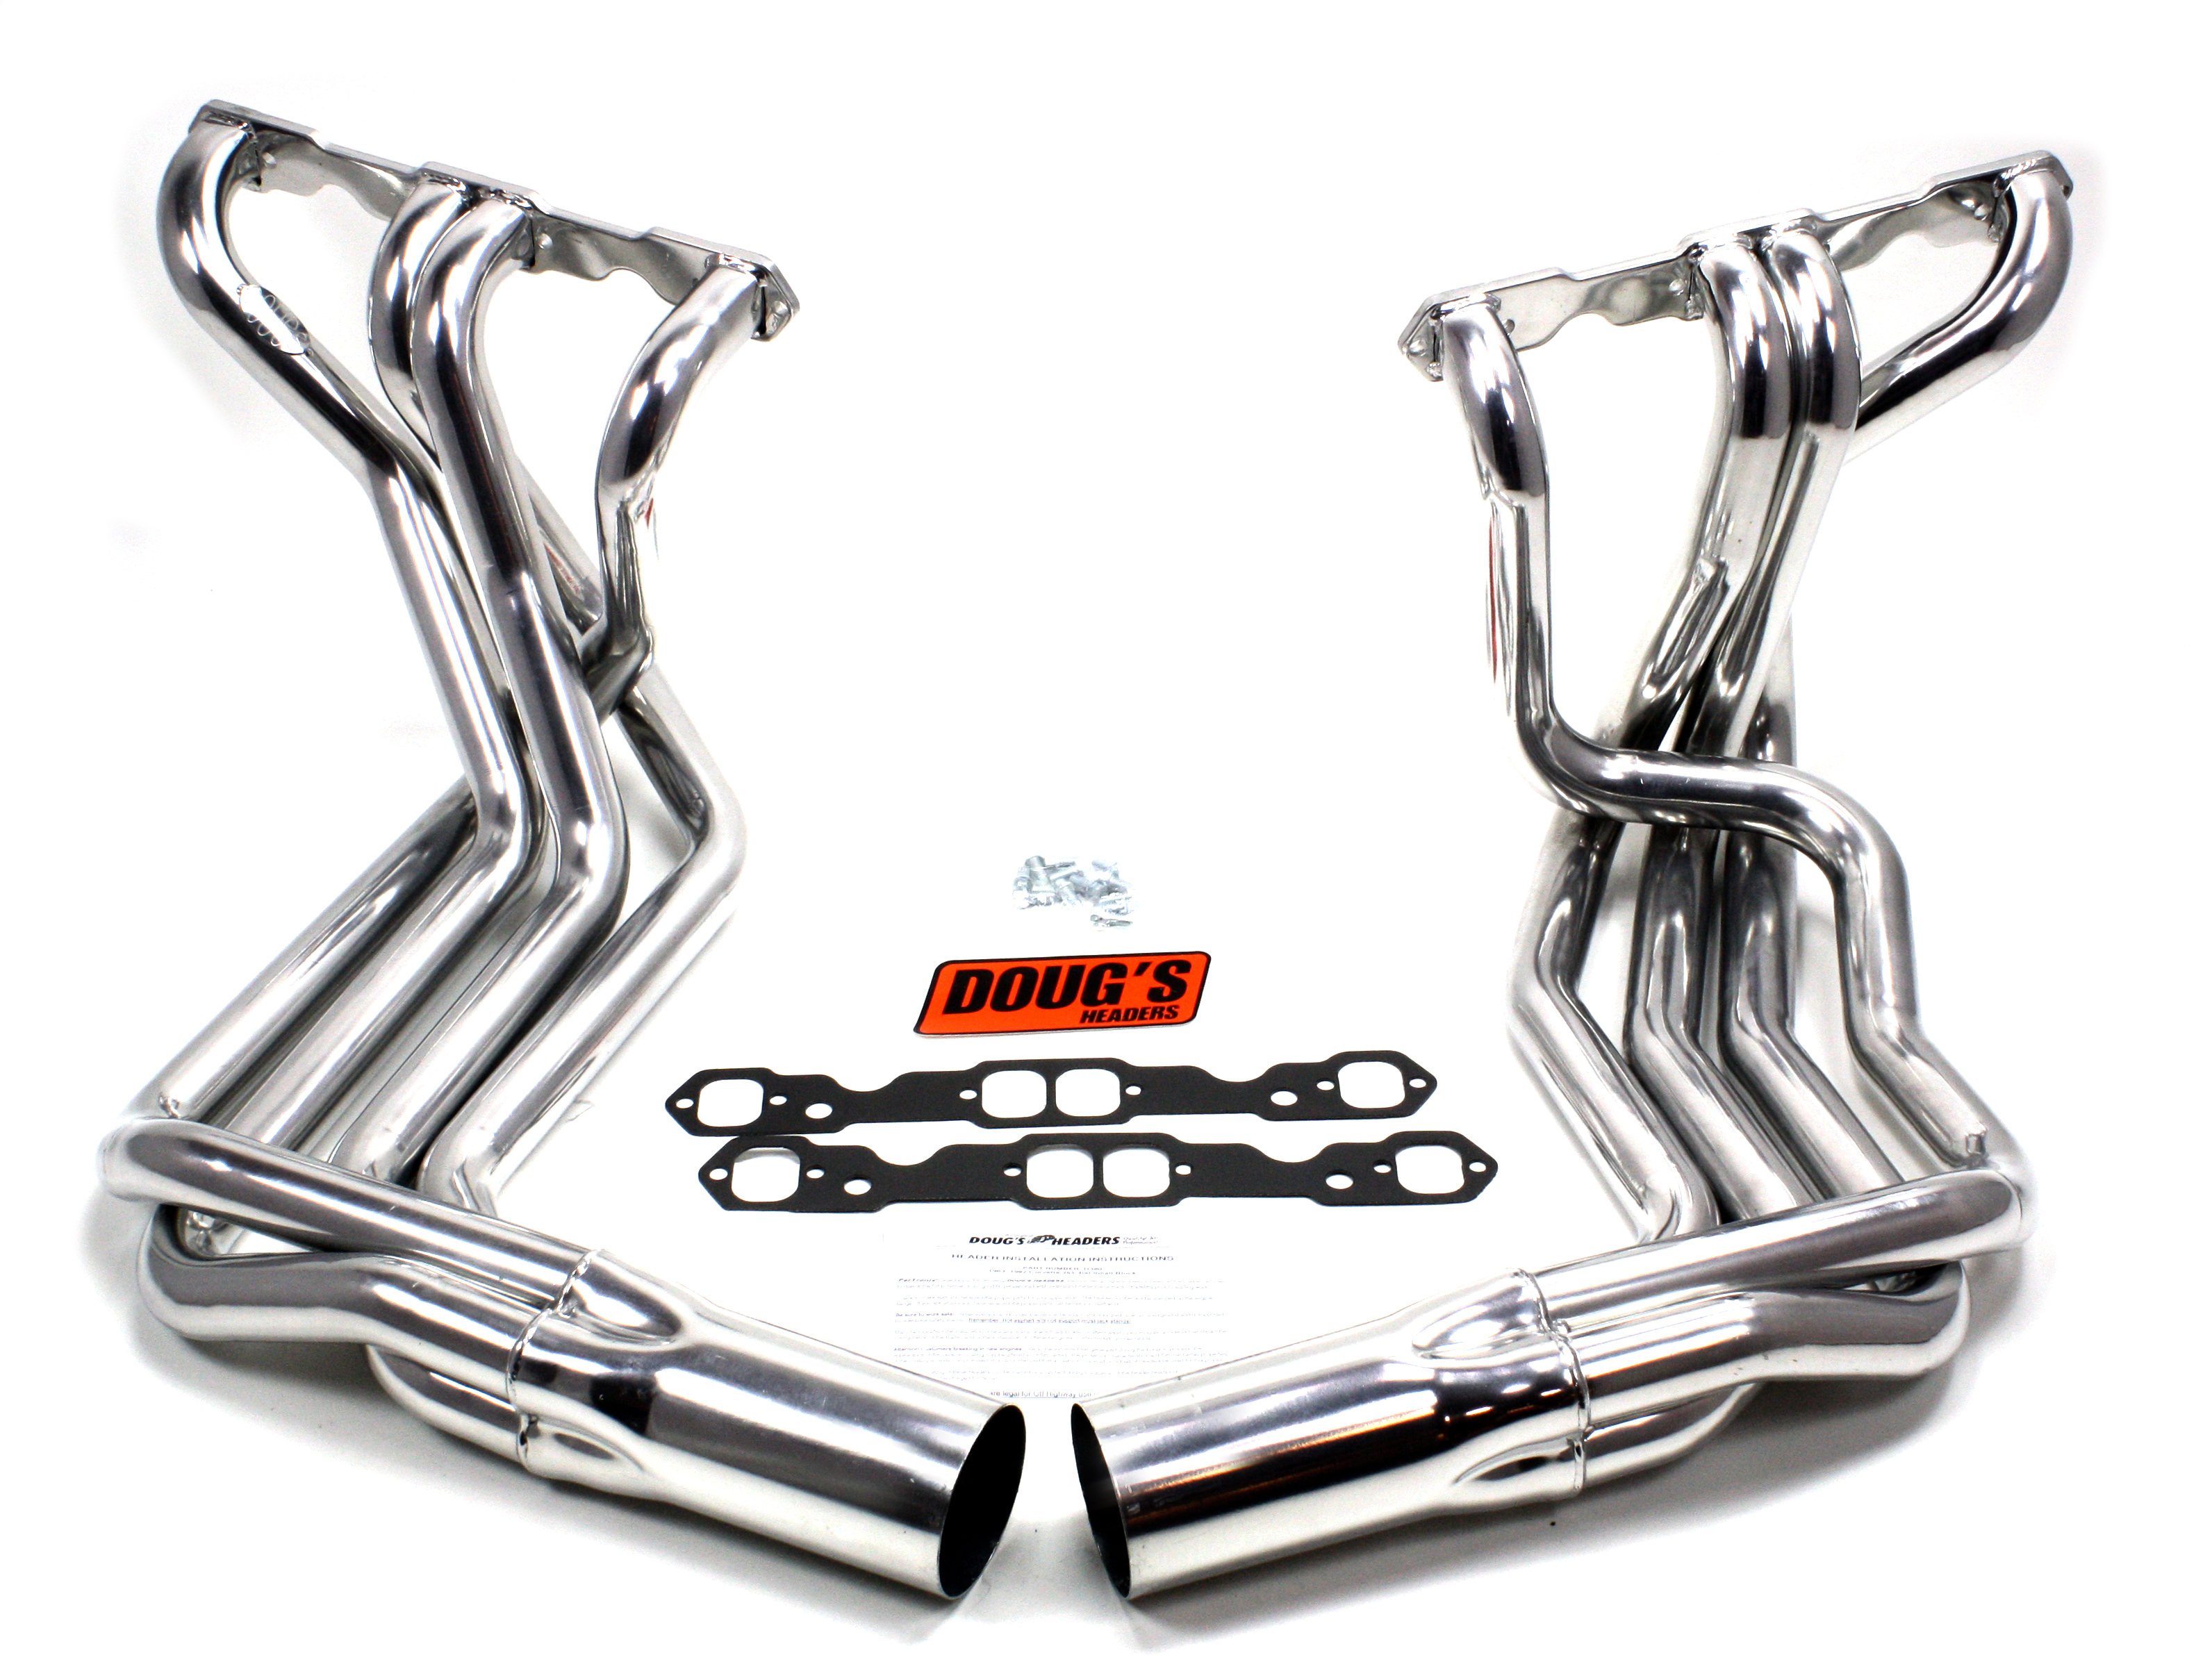 Doug S Headers D380 1 7 8 4 Tube Full Length Metallic